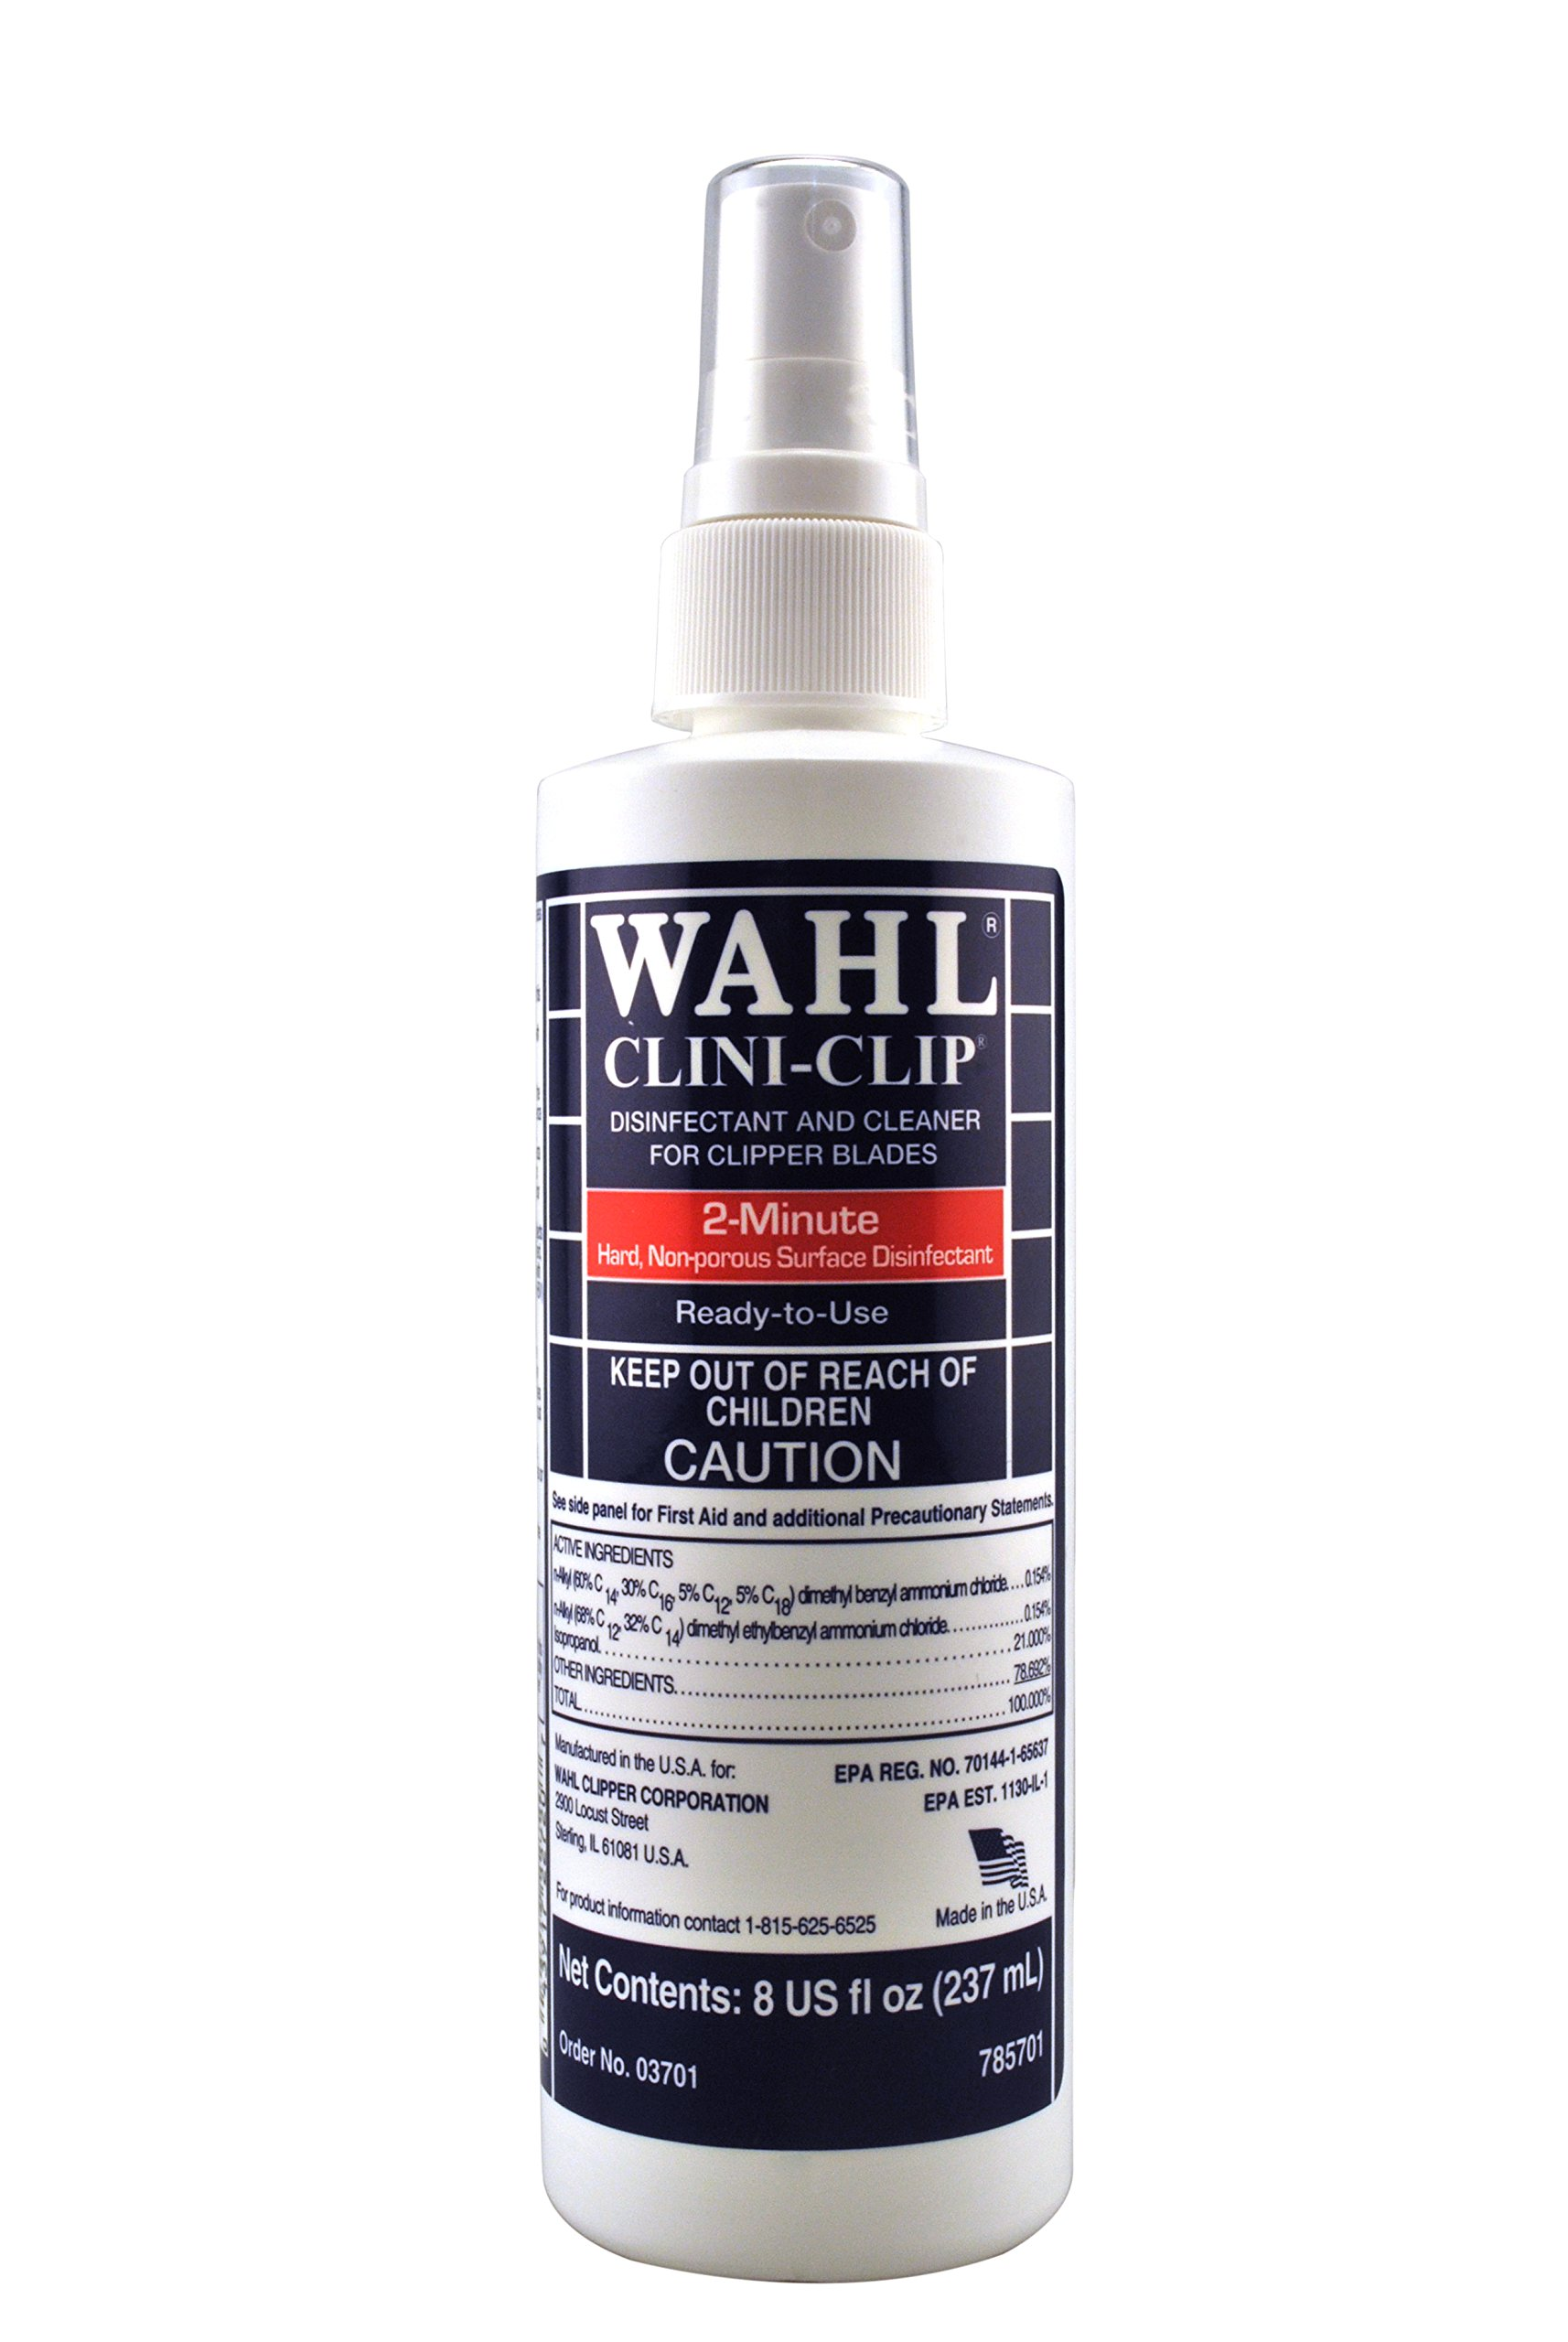 WAHL Professional Animal Clini-Clip Blade Disinfectant and Cleaner Spray (3701-100)